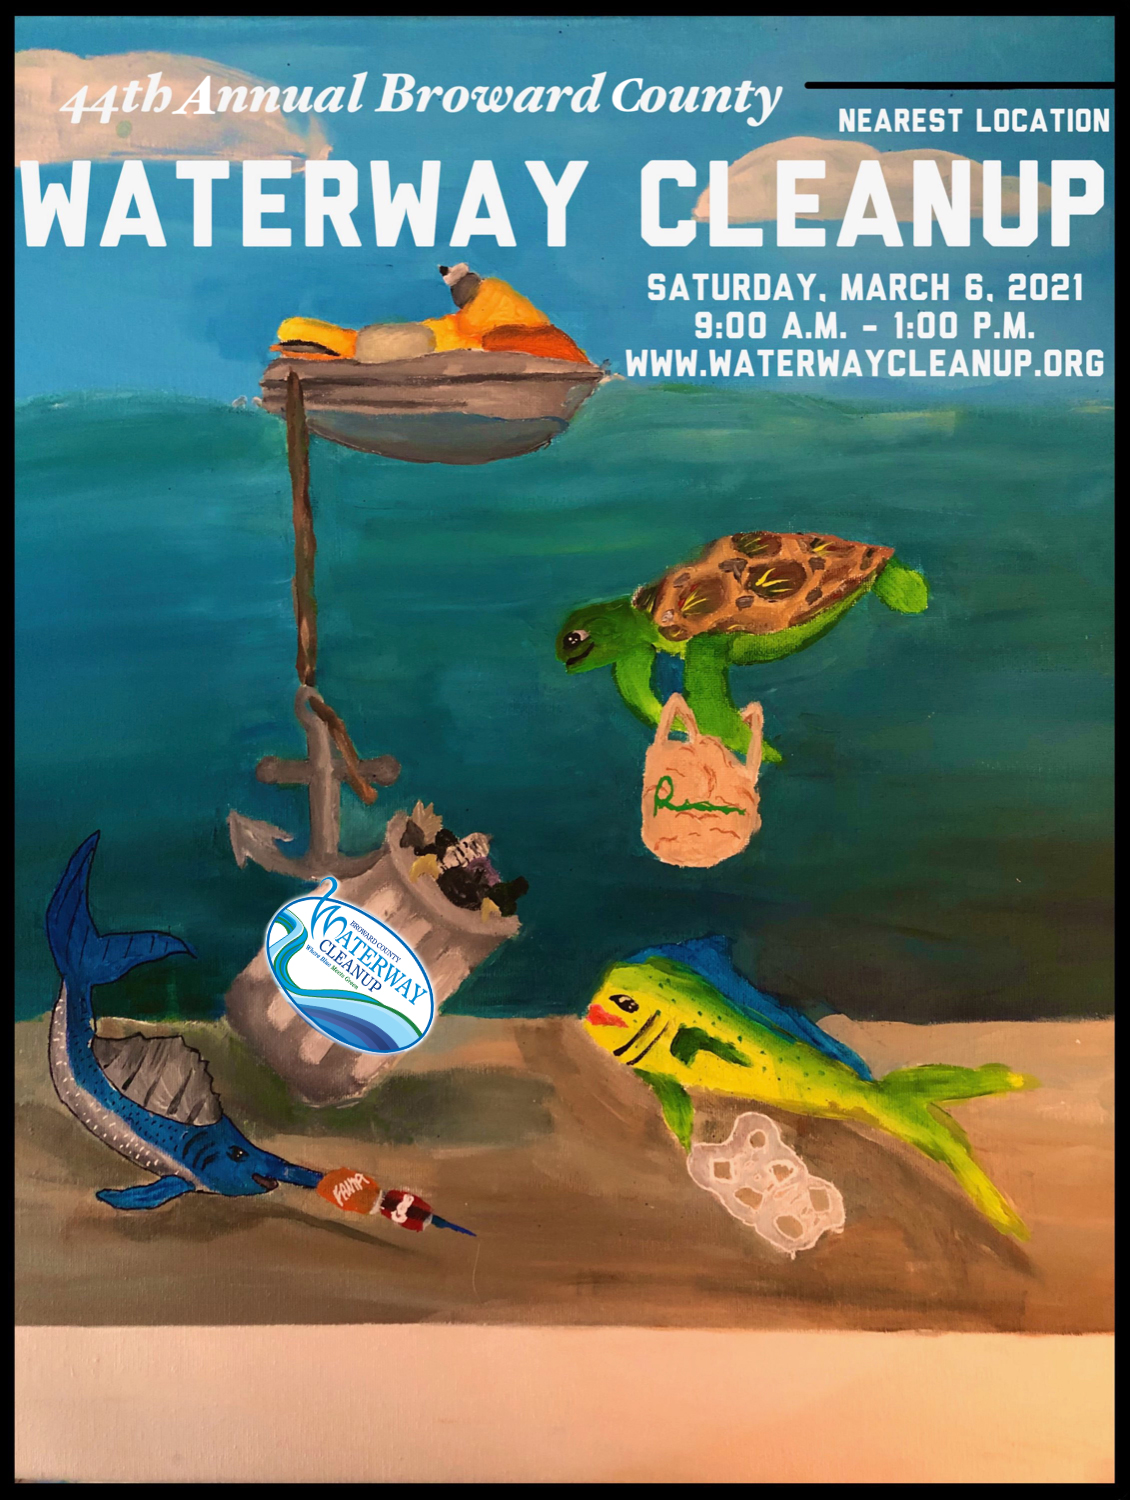 Winner of the Waterway Cleanup Poster Contest Announced